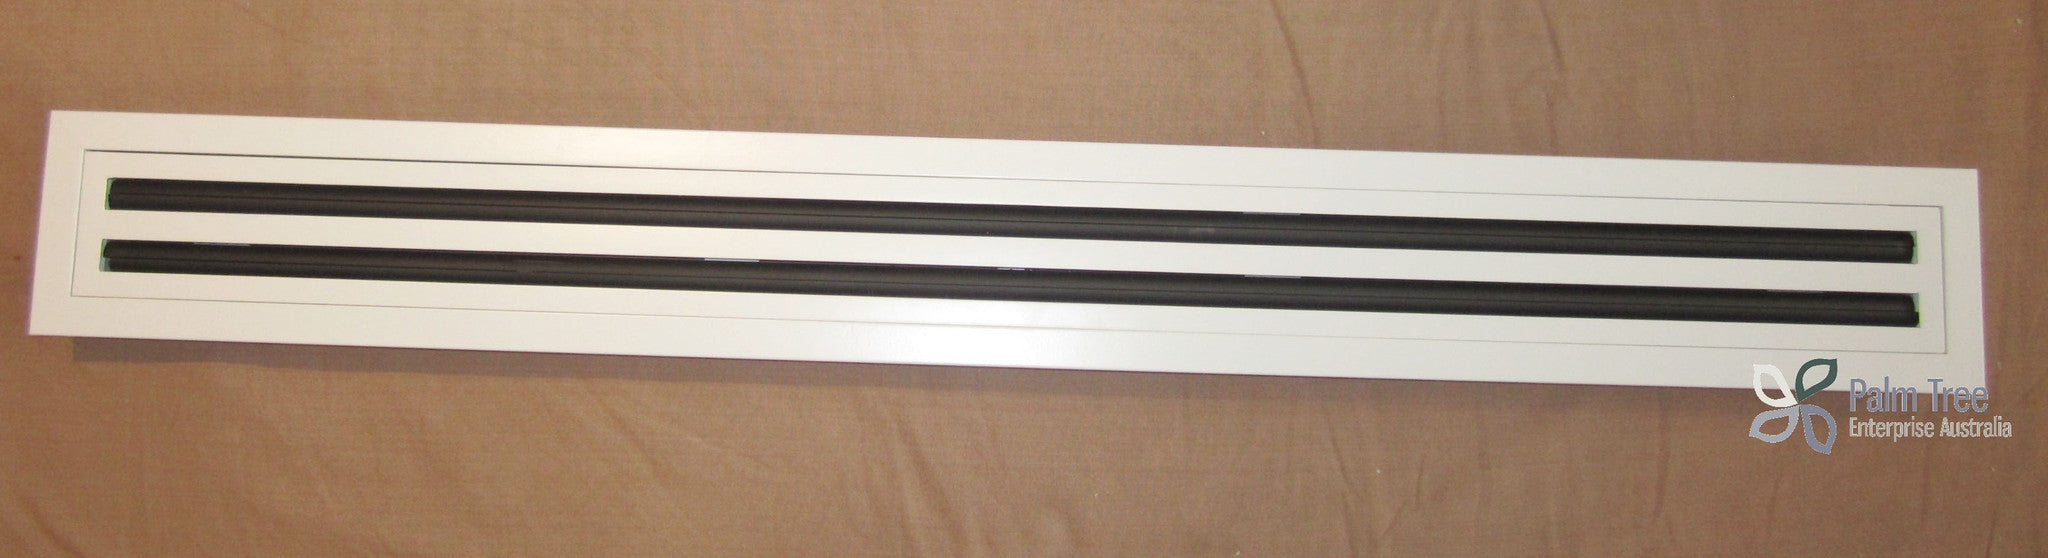 High Quality Aluminium Linear Grill Air Conditioner 2 slot Grill/Vent removable core (White)